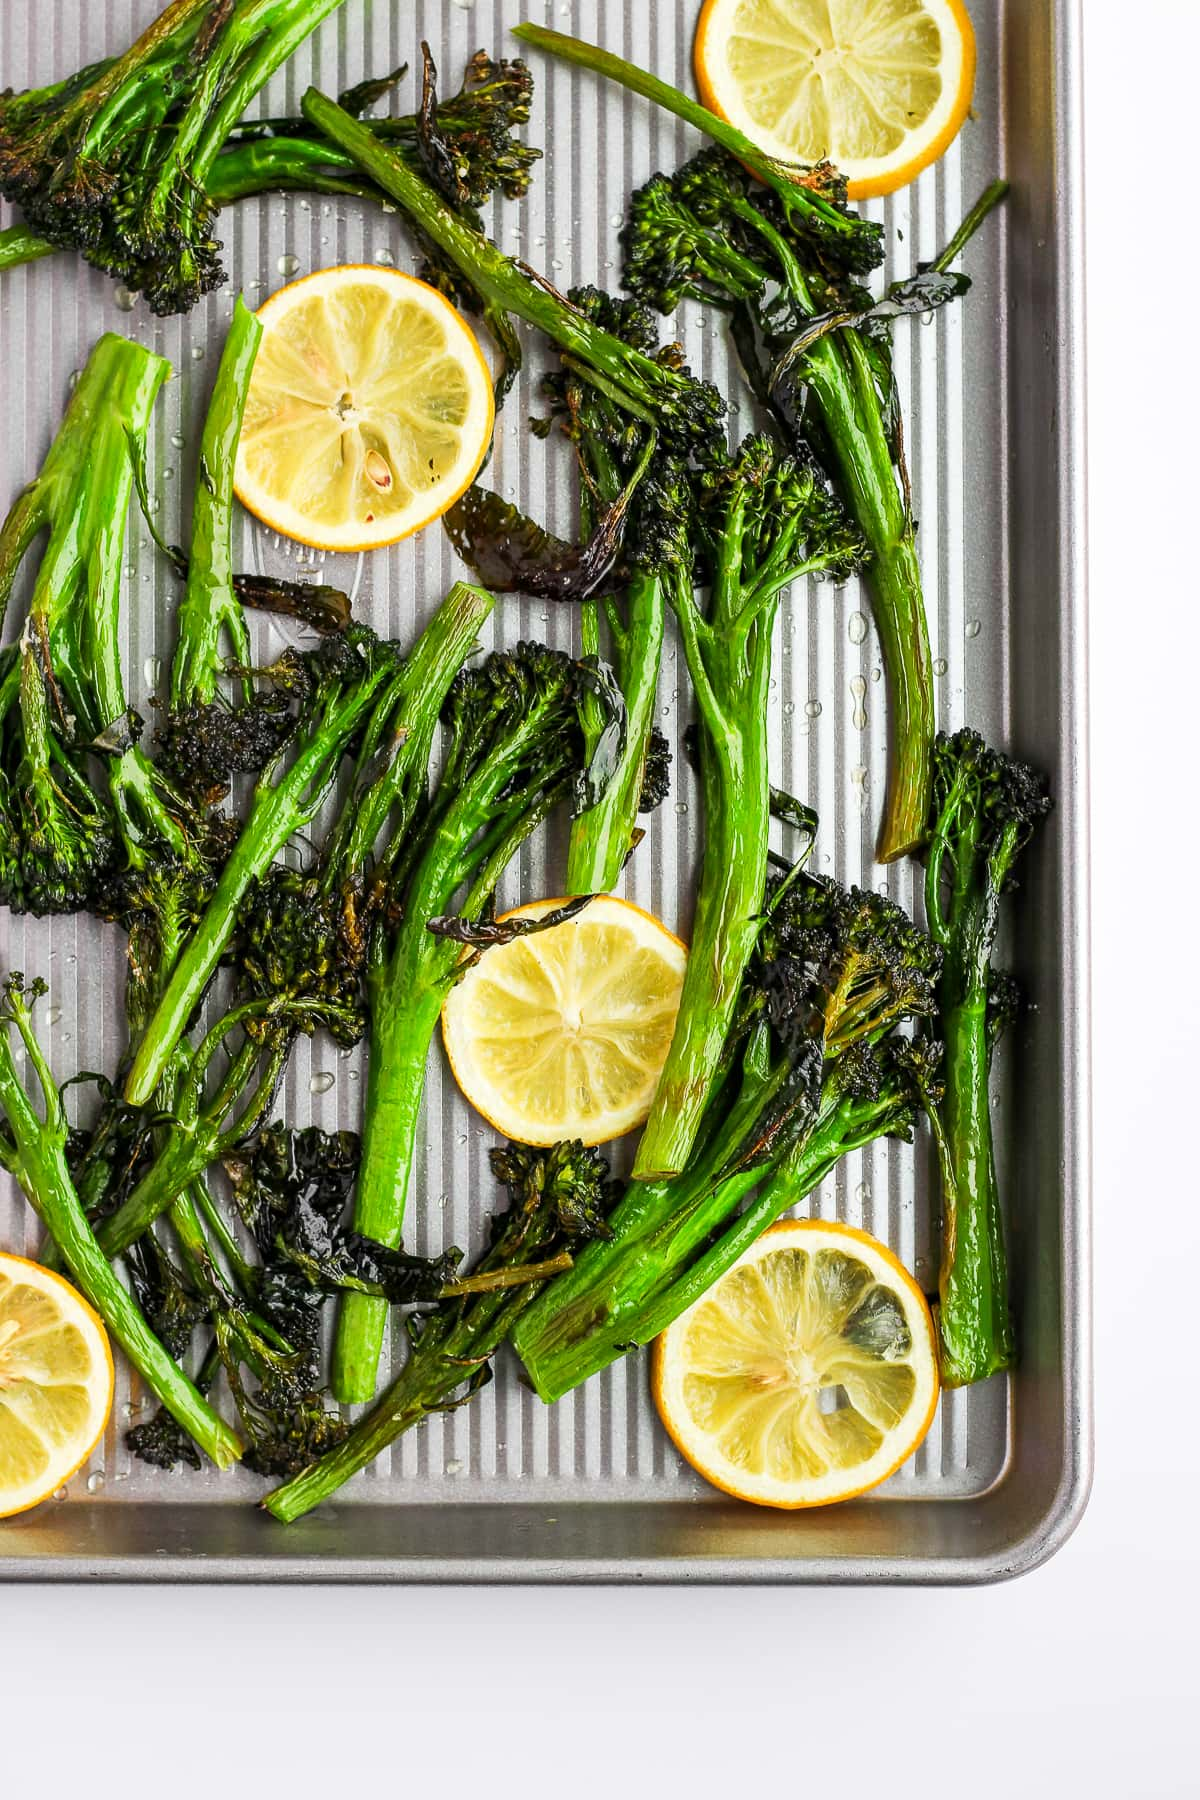 Super Simple Roasted Broccolini - the easiest and most delicious side dish for any meal! #whole30 #vegan